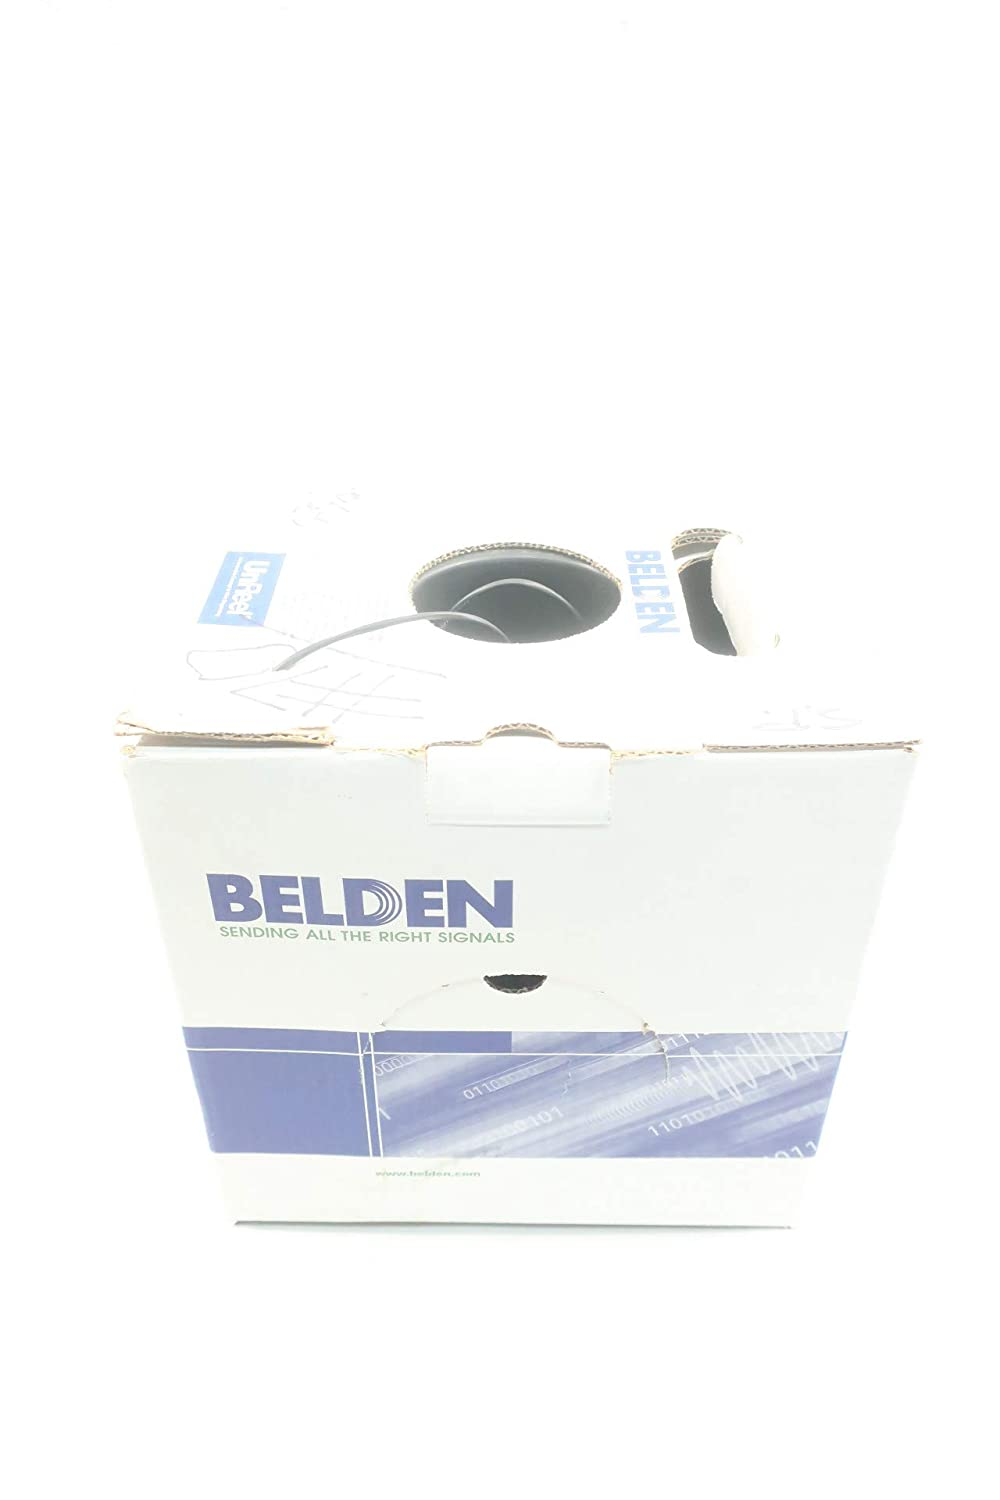 BELDEN 6500FE 010 Cable 2C 22AWG 215FT